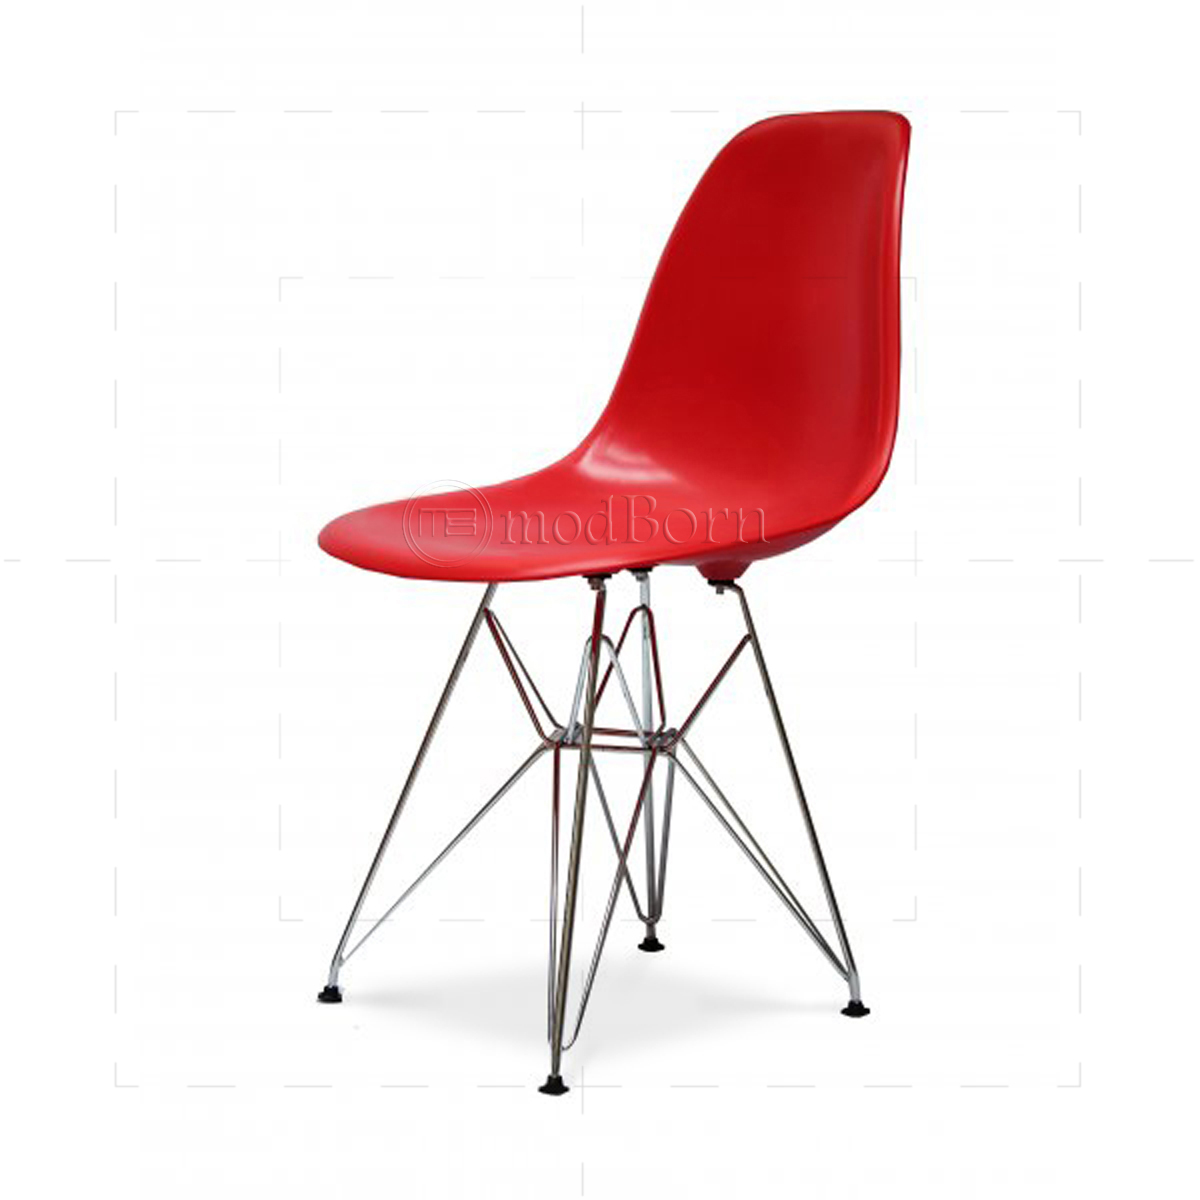 eames style dining dsr eiffel chair red. Black Bedroom Furniture Sets. Home Design Ideas